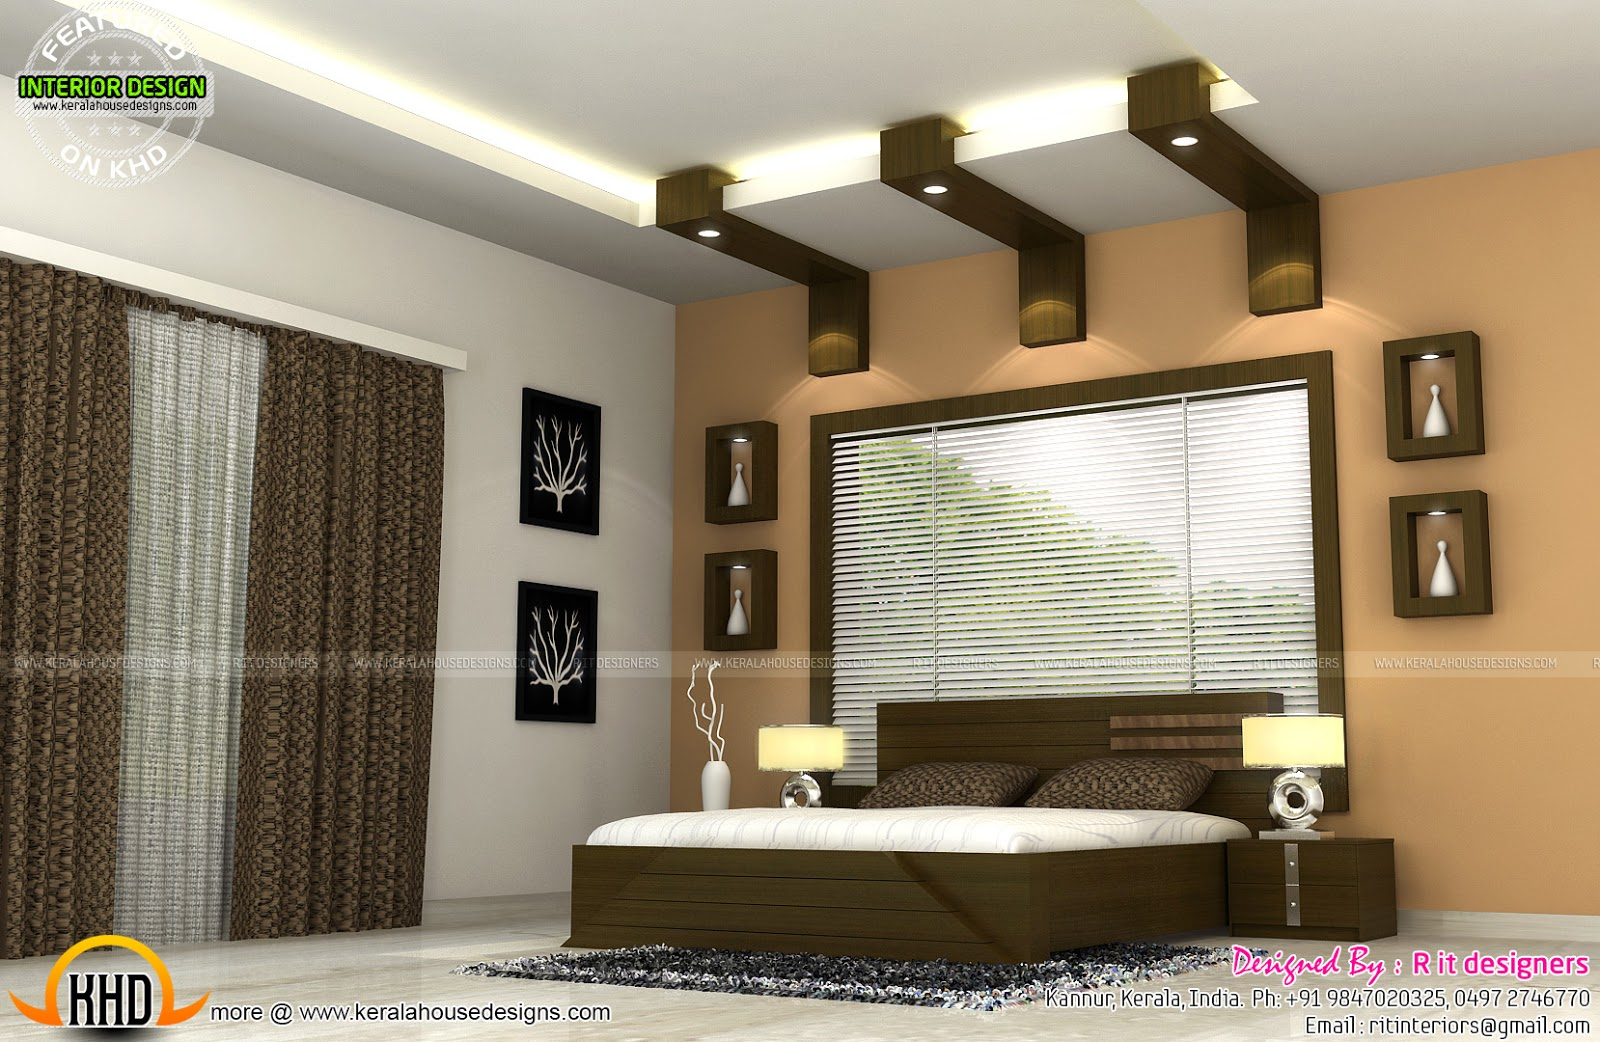 Interiors of bedrooms and kitchen kerala home design and for Picture of interior designs of house